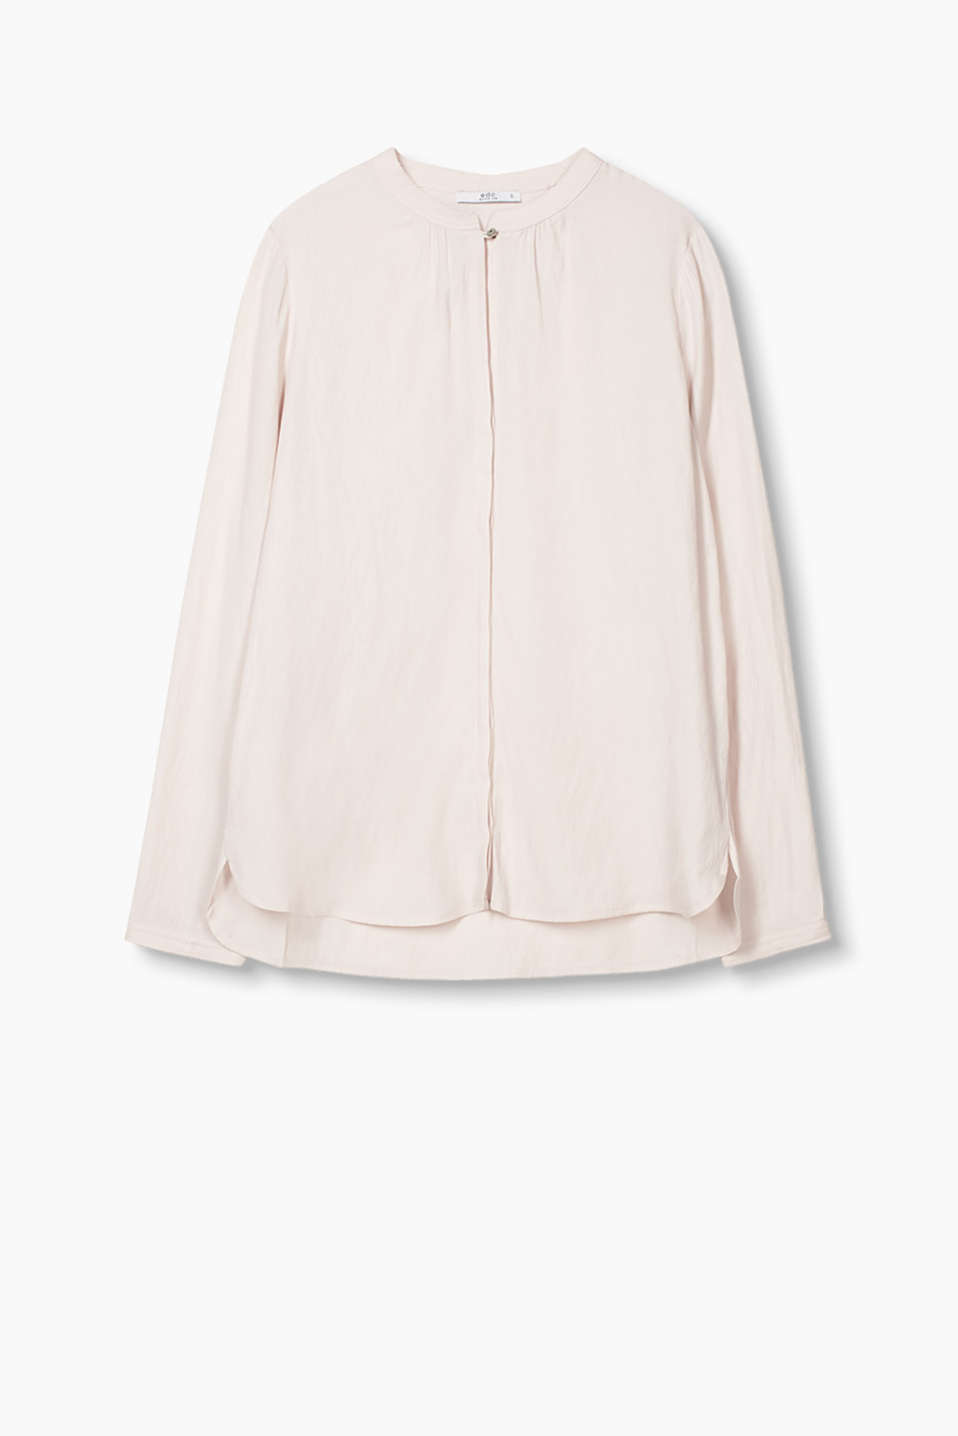 Crafted from softly draped blended viscose, this blouse is minimalist and feminine at the same time